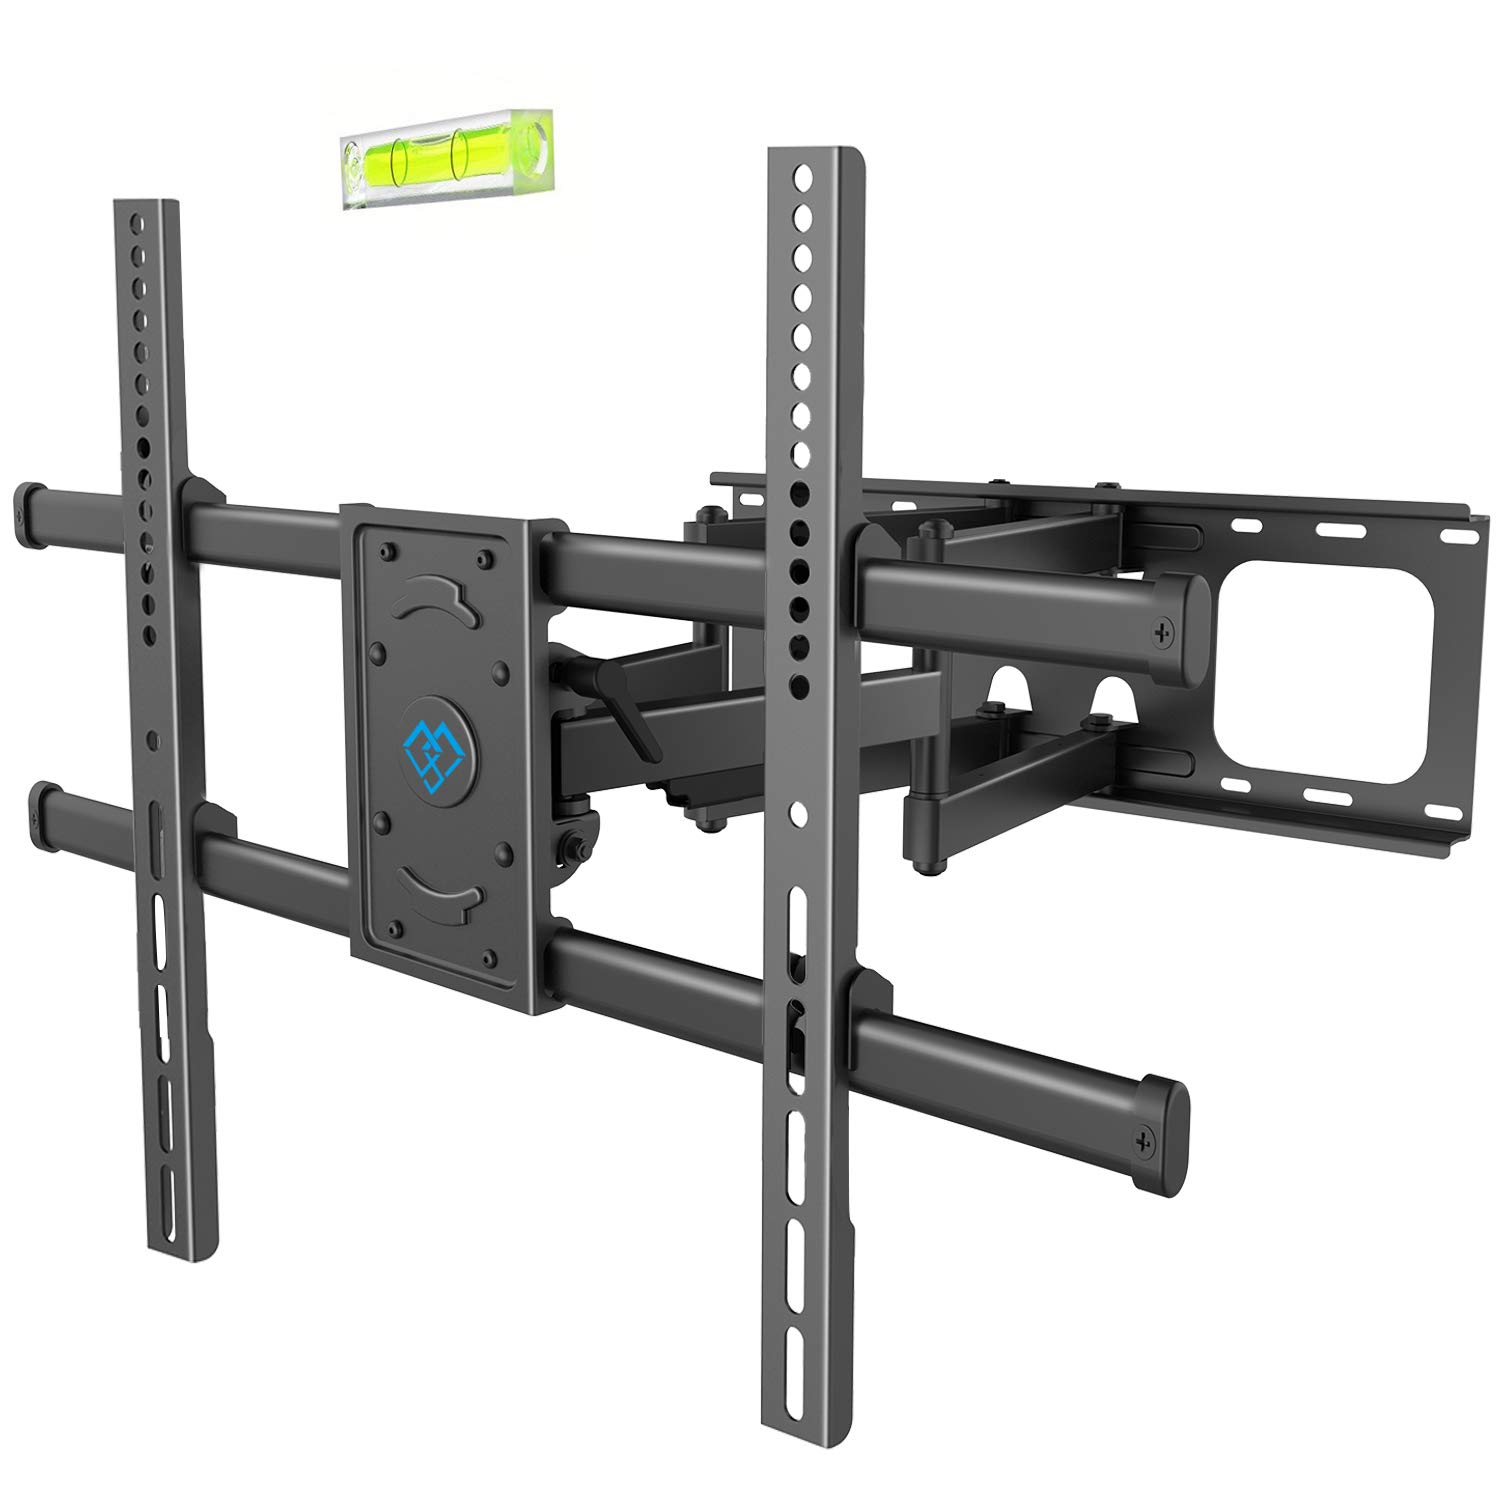 PERLESMITH TV Wall Mount Bracket Full Motion, Tilts, Swivels for most 50-90 Inch LED LCD OLED Flat Screen Plasma TVs with Dual Articulating Arms, Holds up to 165lbs VESA 800x600mm,Max Stud Spacing 24''